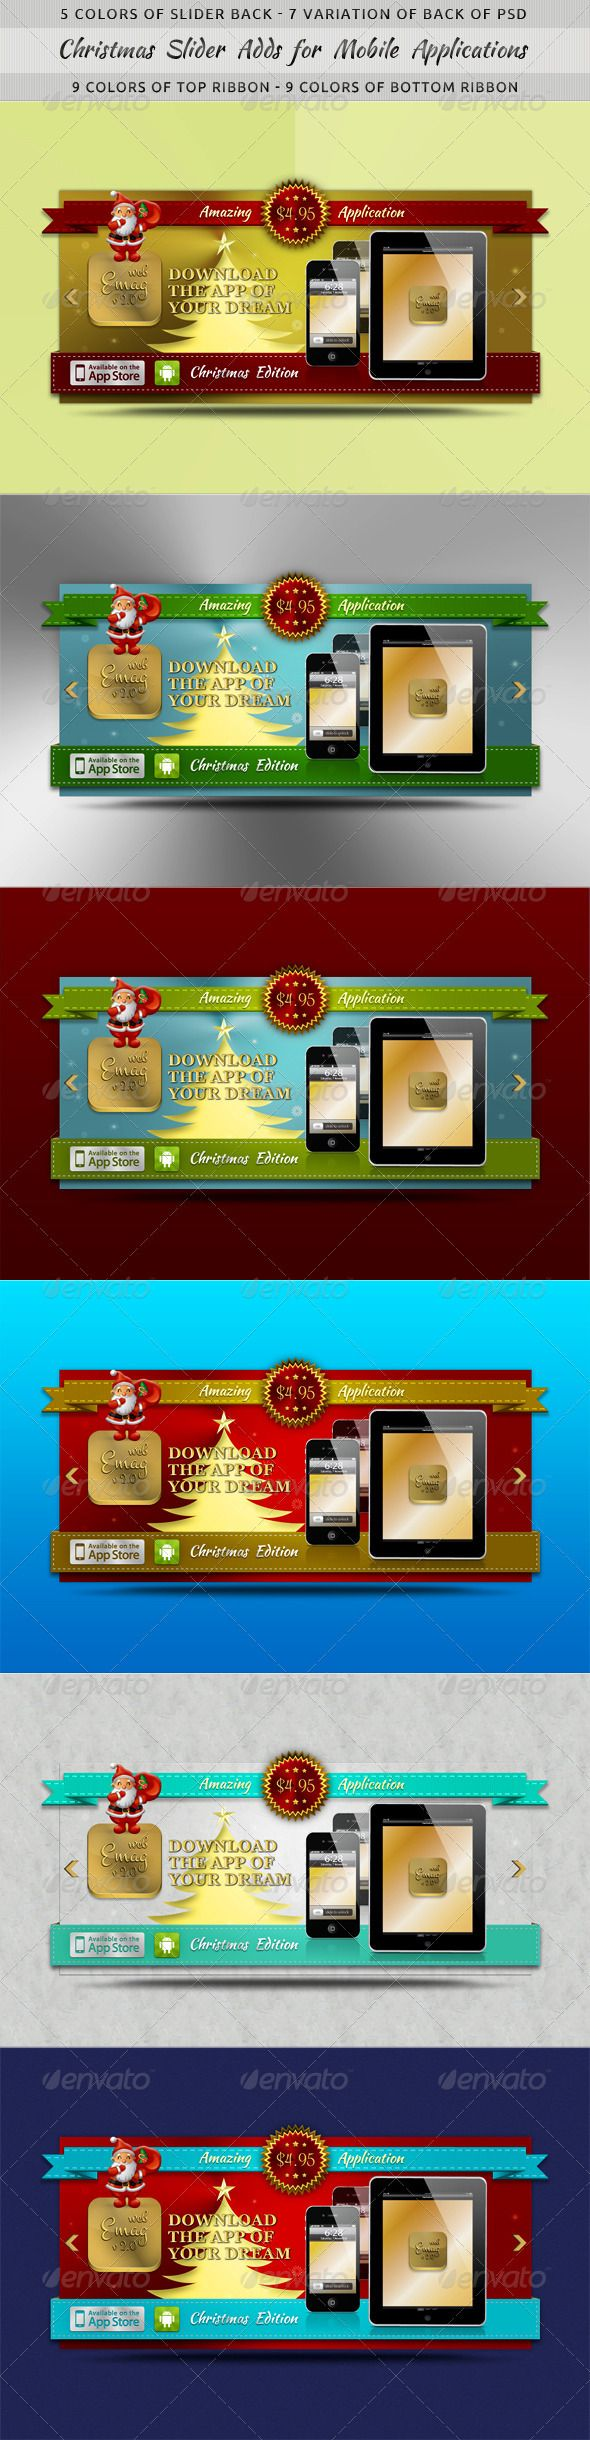 Christmas Slider Ads for Mobile Applications  #GraphicRiver         5 colors of Slider Back – 7 variation of Back of PSD   	 9 colors of Top Ribbon – 9 Colors of Bottom Ribbon  	 Just replace your Application icon.  	 Place your image in the iPad, iPhone: Vector Smart Objects.  	 Replace text and use this add with any color of ribbons, slider and back of header on you site  	 Enjoy!    	 See my Web Elements:     See my Photoshop Actions:    See my Photoshop Text Styles:                See my…